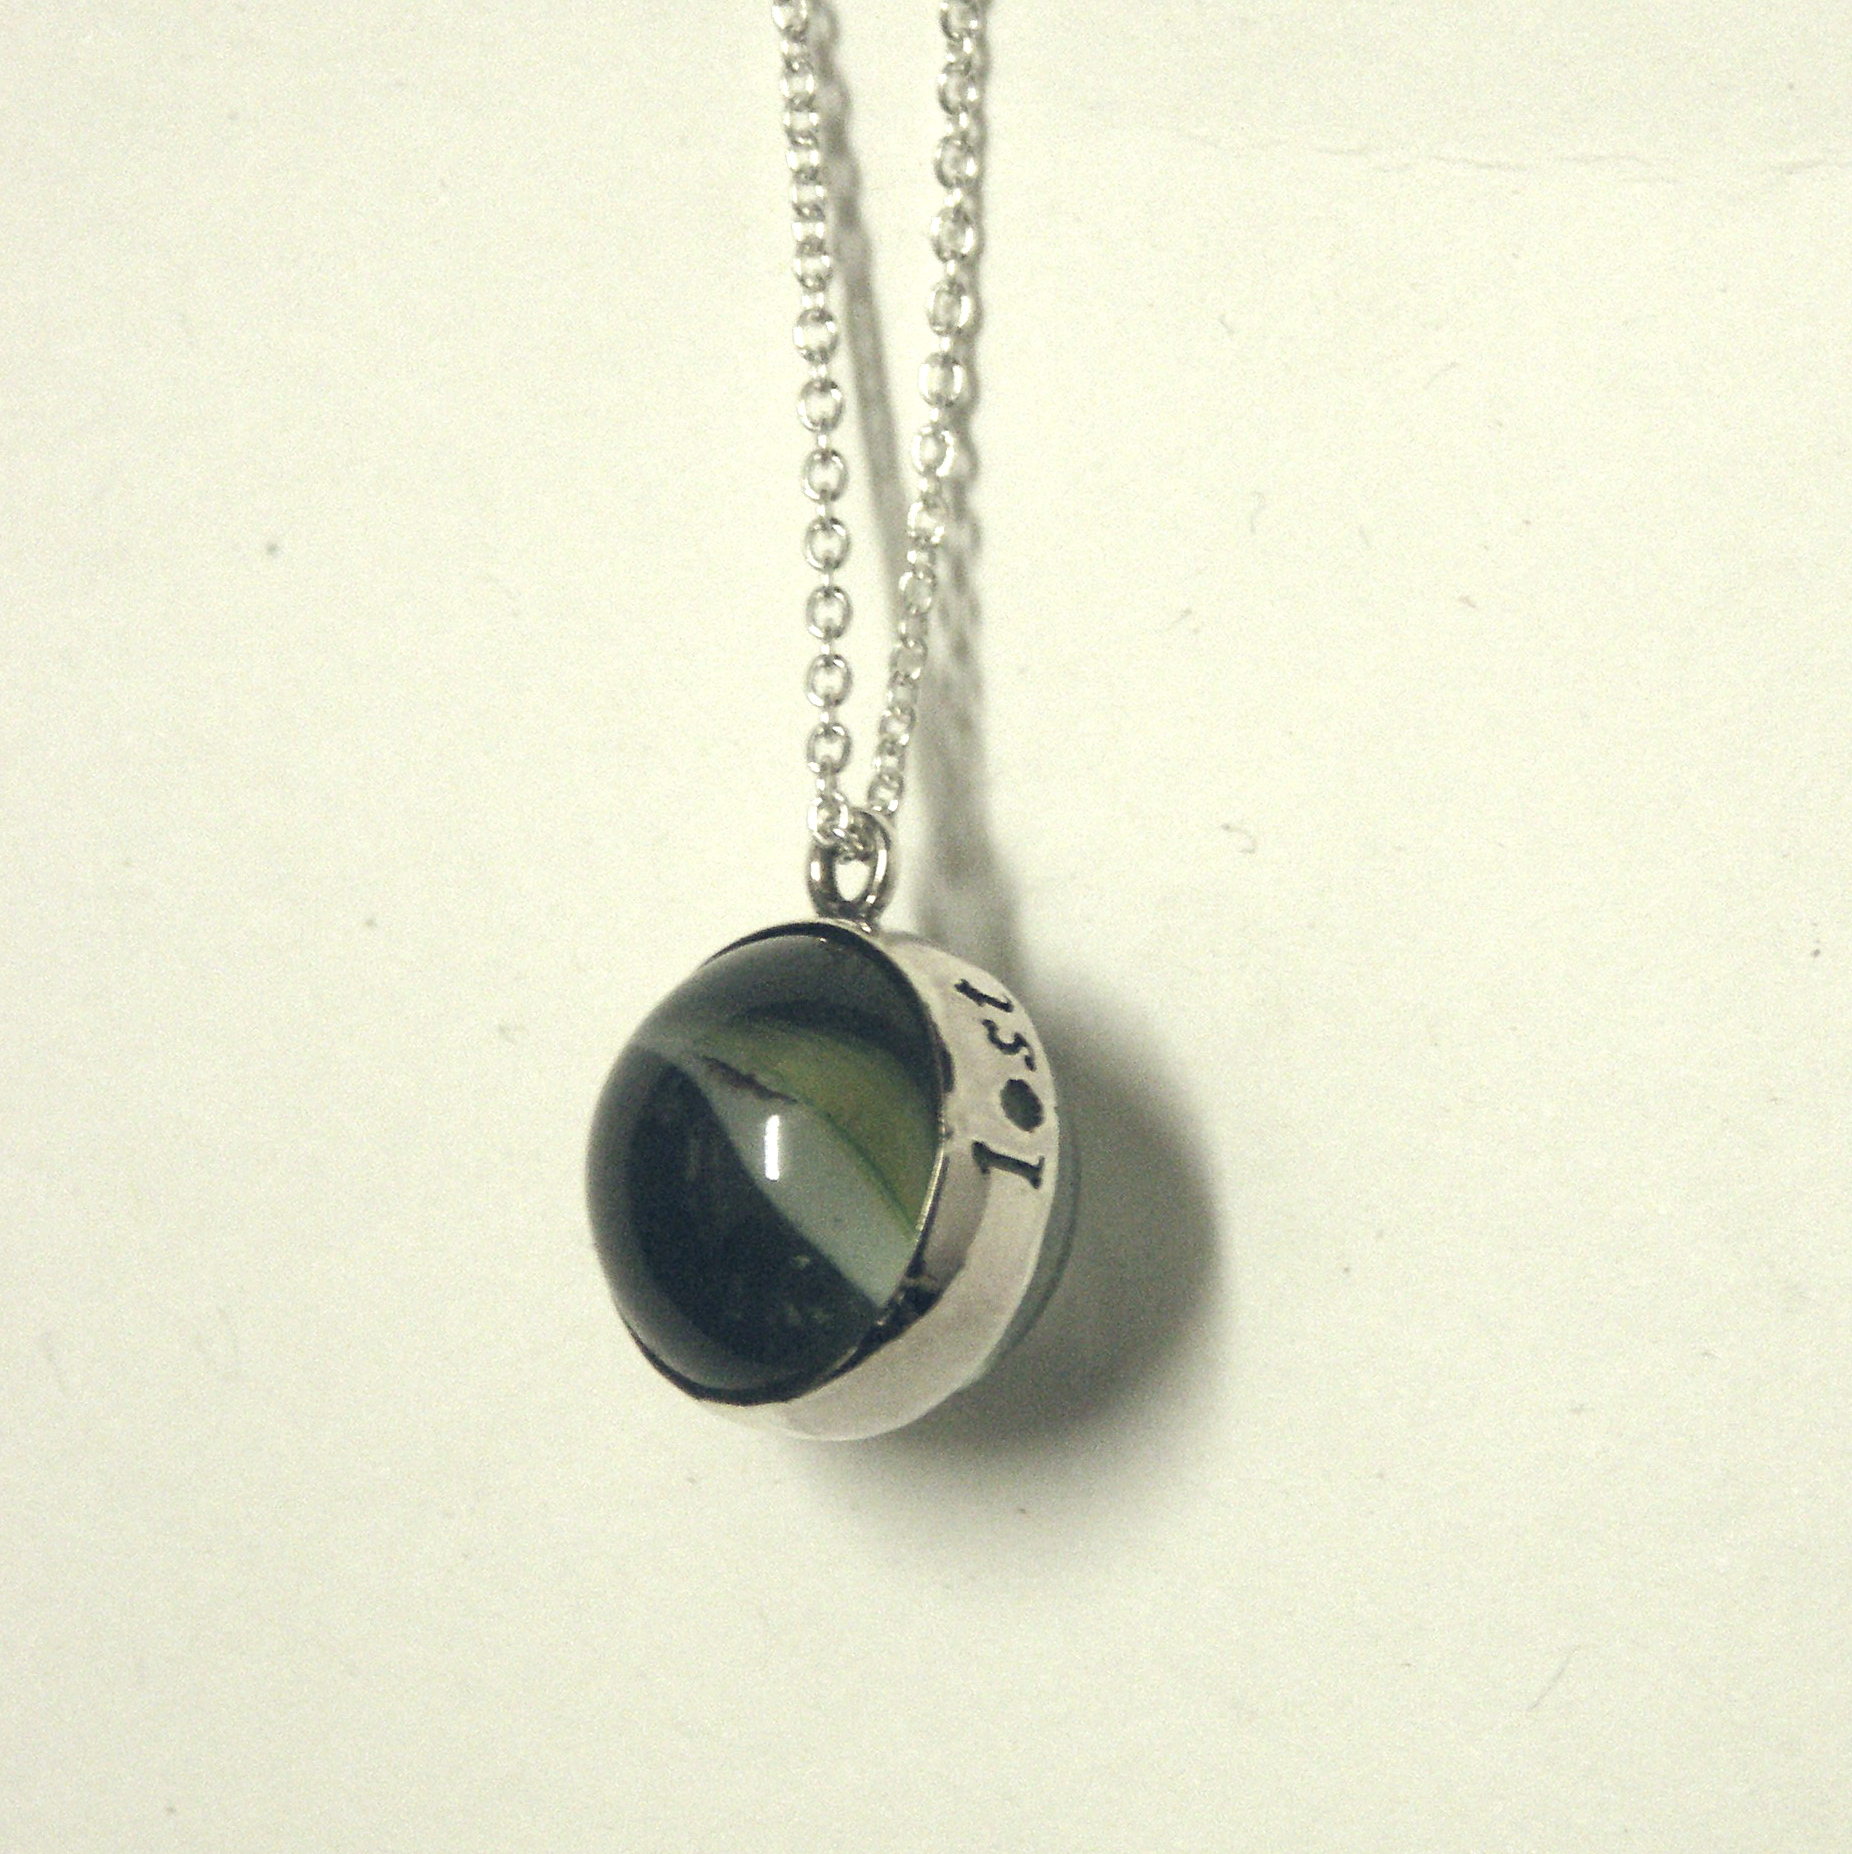 LMN-Lost marble necklace